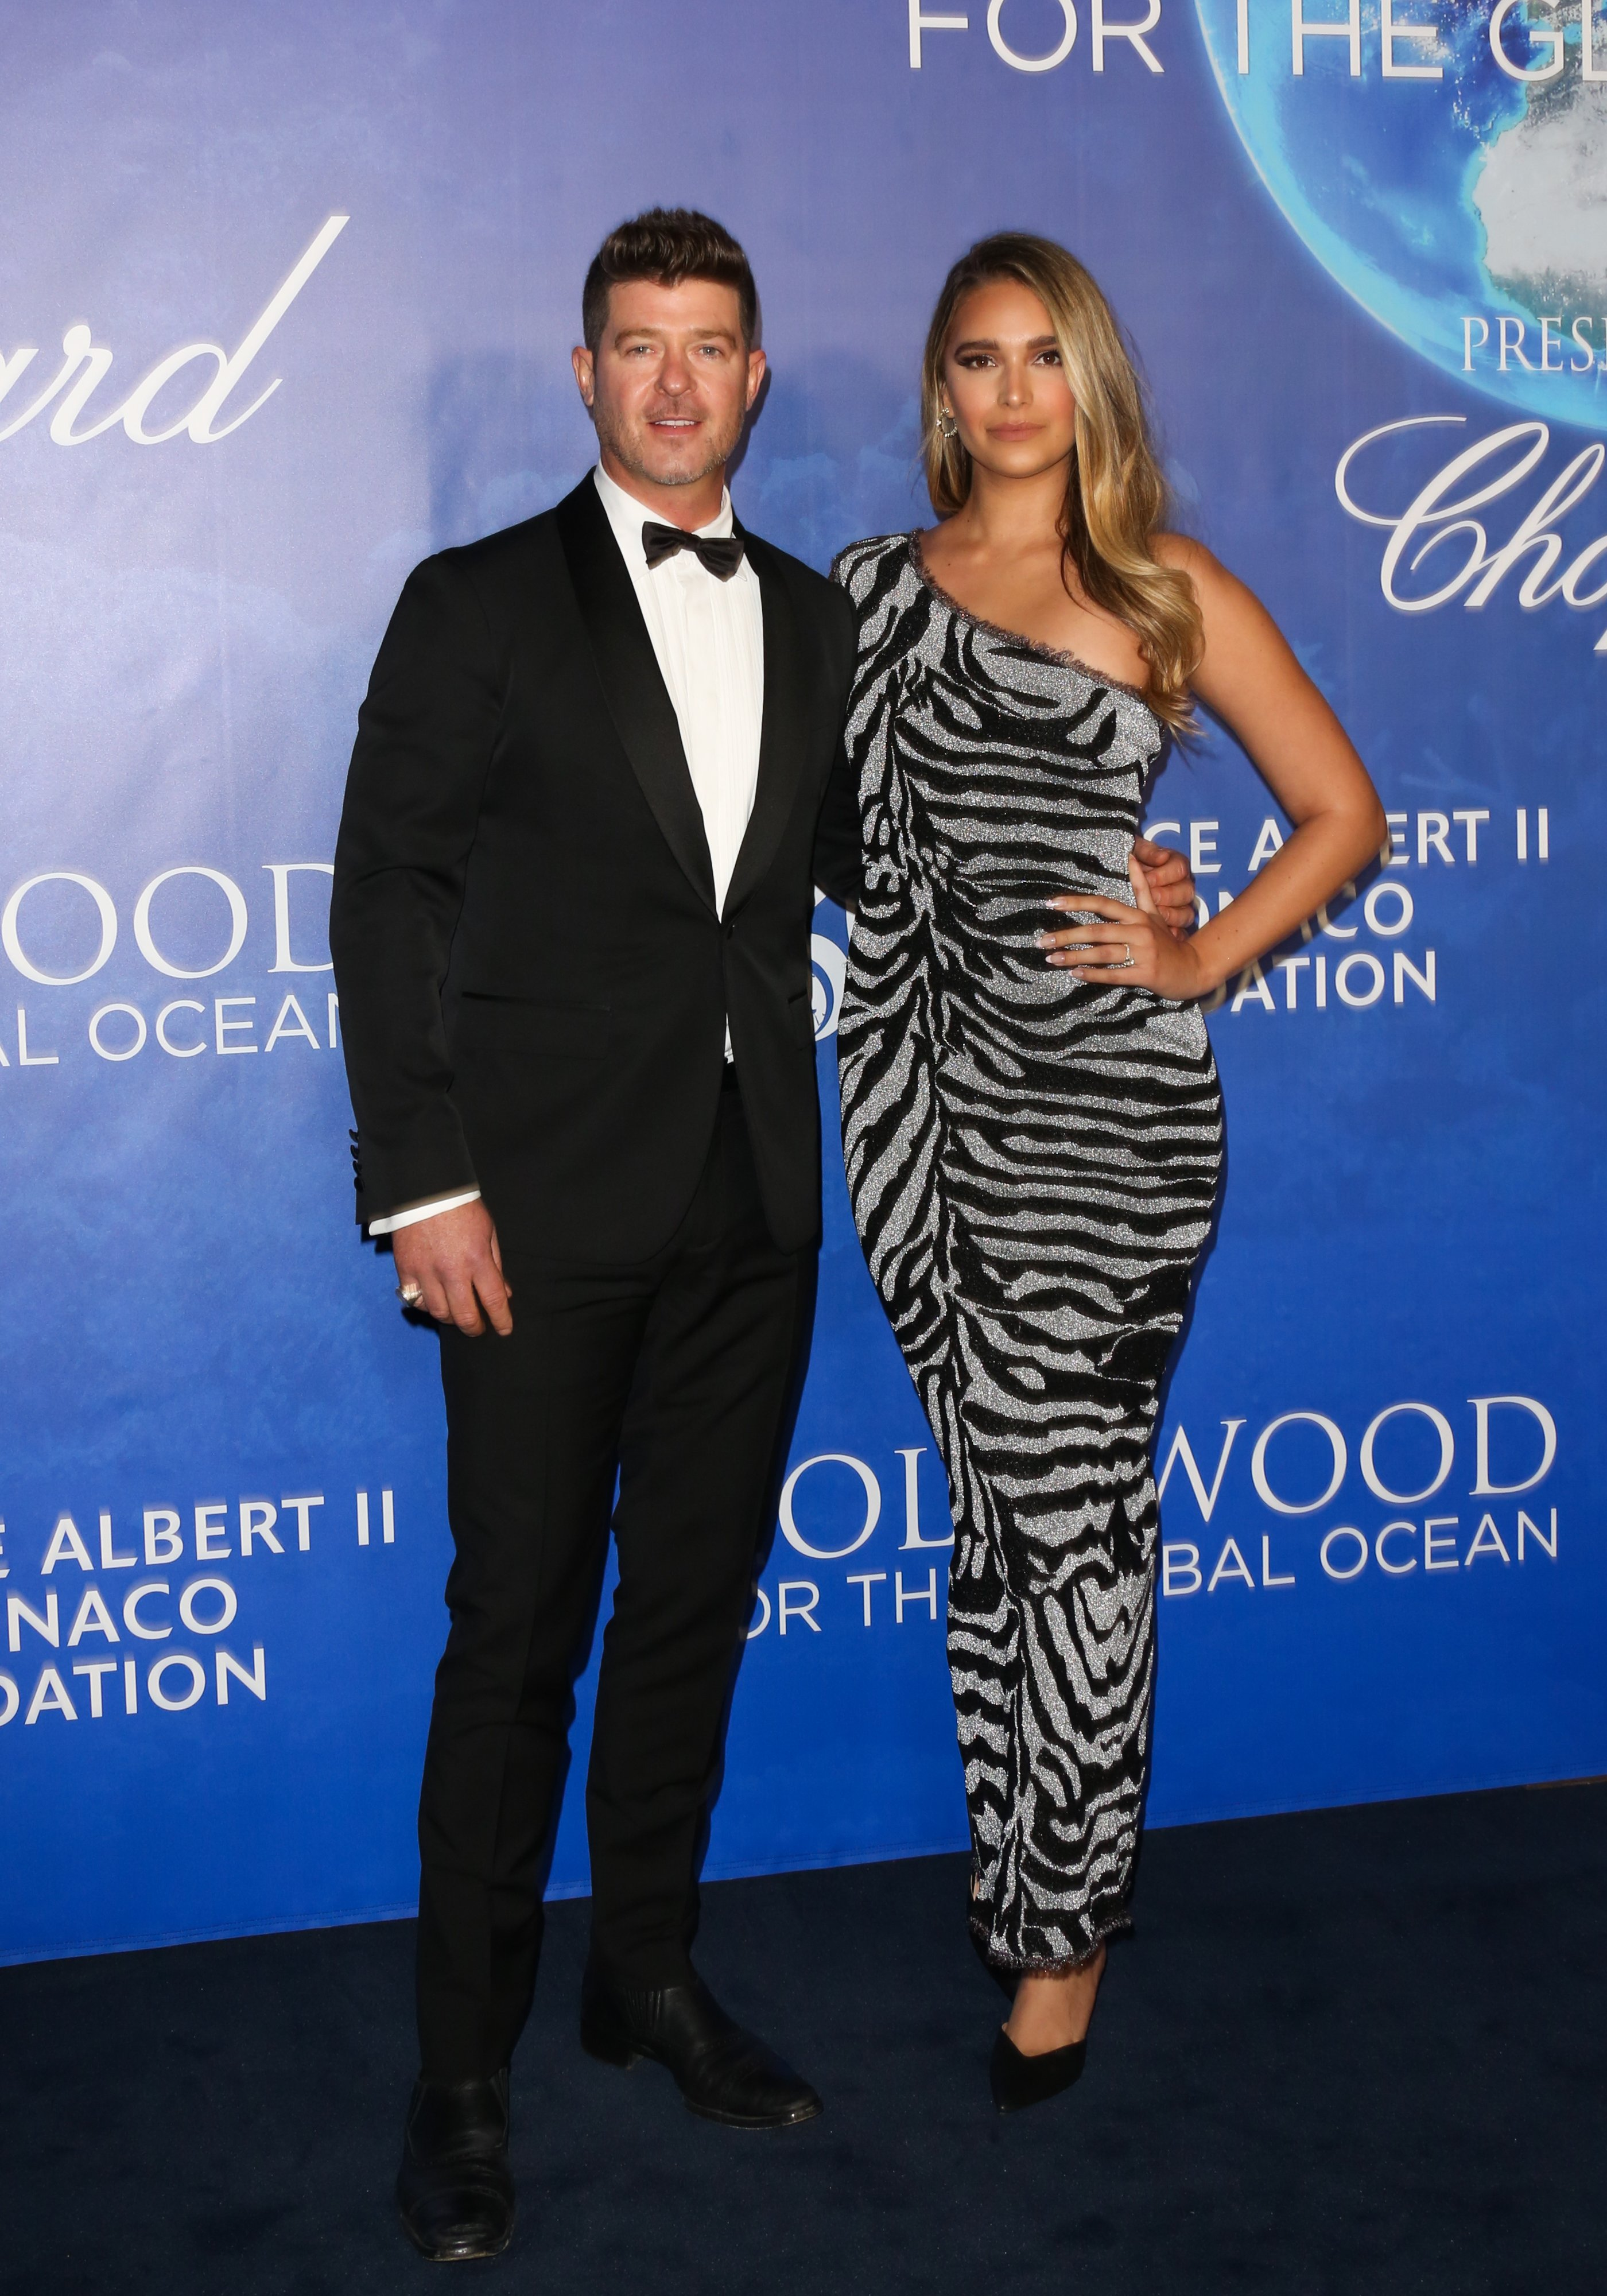 Robin Thicke and his fiance, April Love Geary at the Hollywood for the Ocean Gala in Beverly Hills, October, 2020.   Photo: Getty Images.